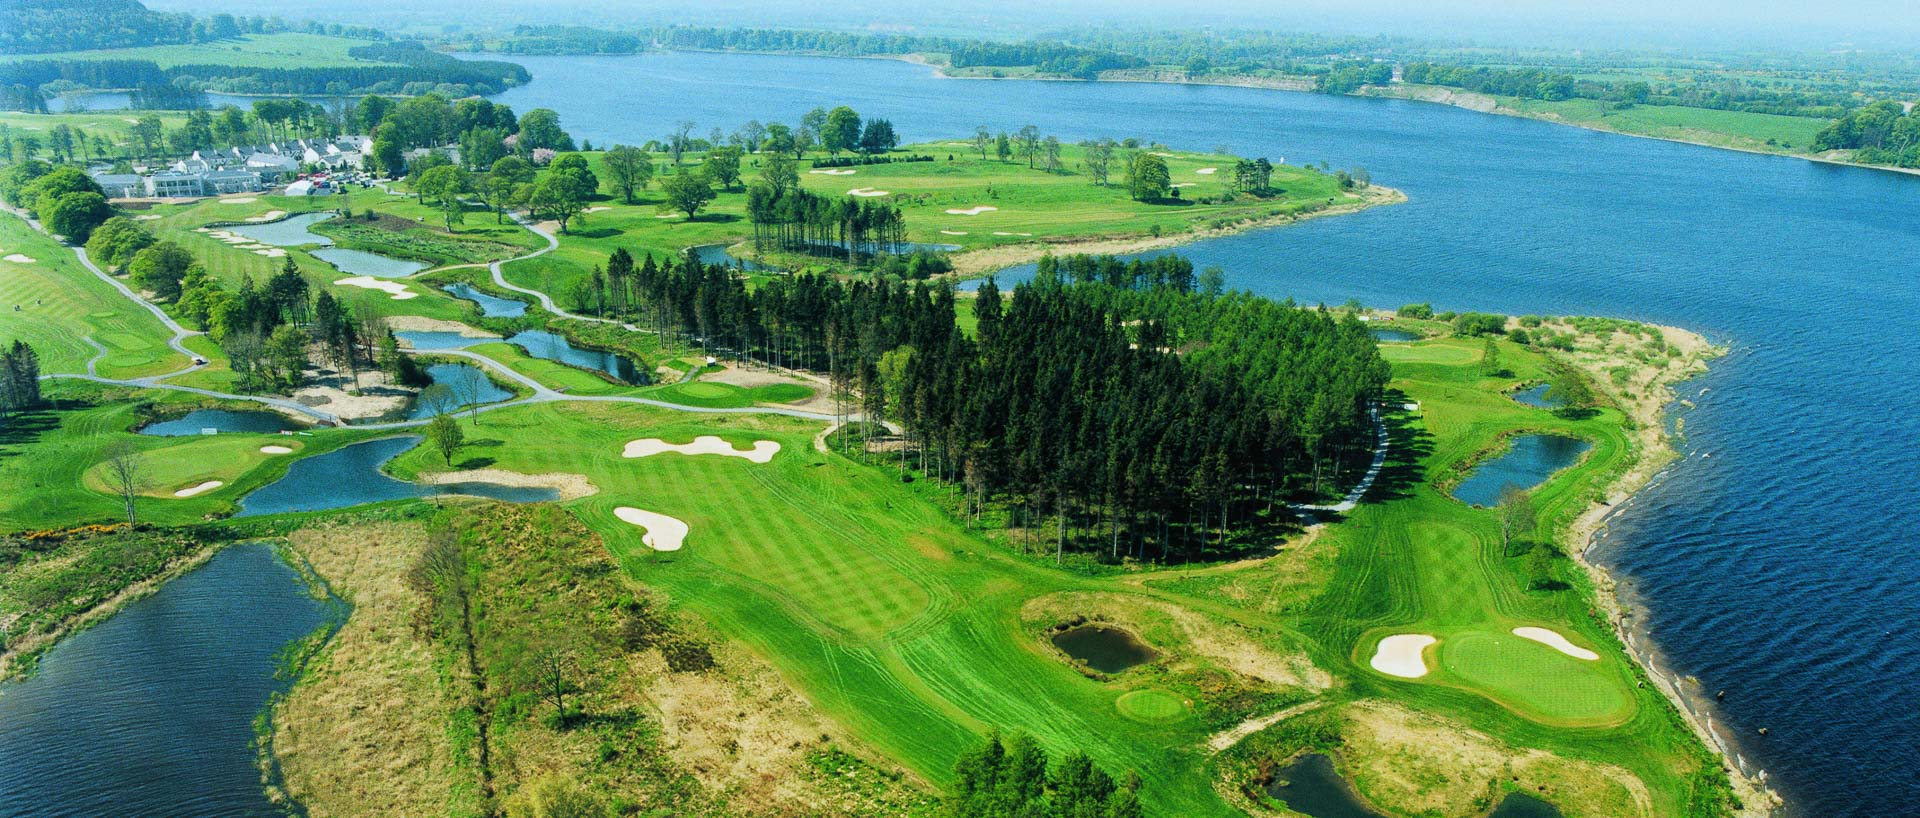 Tulfarris Hotel and Golf Restort